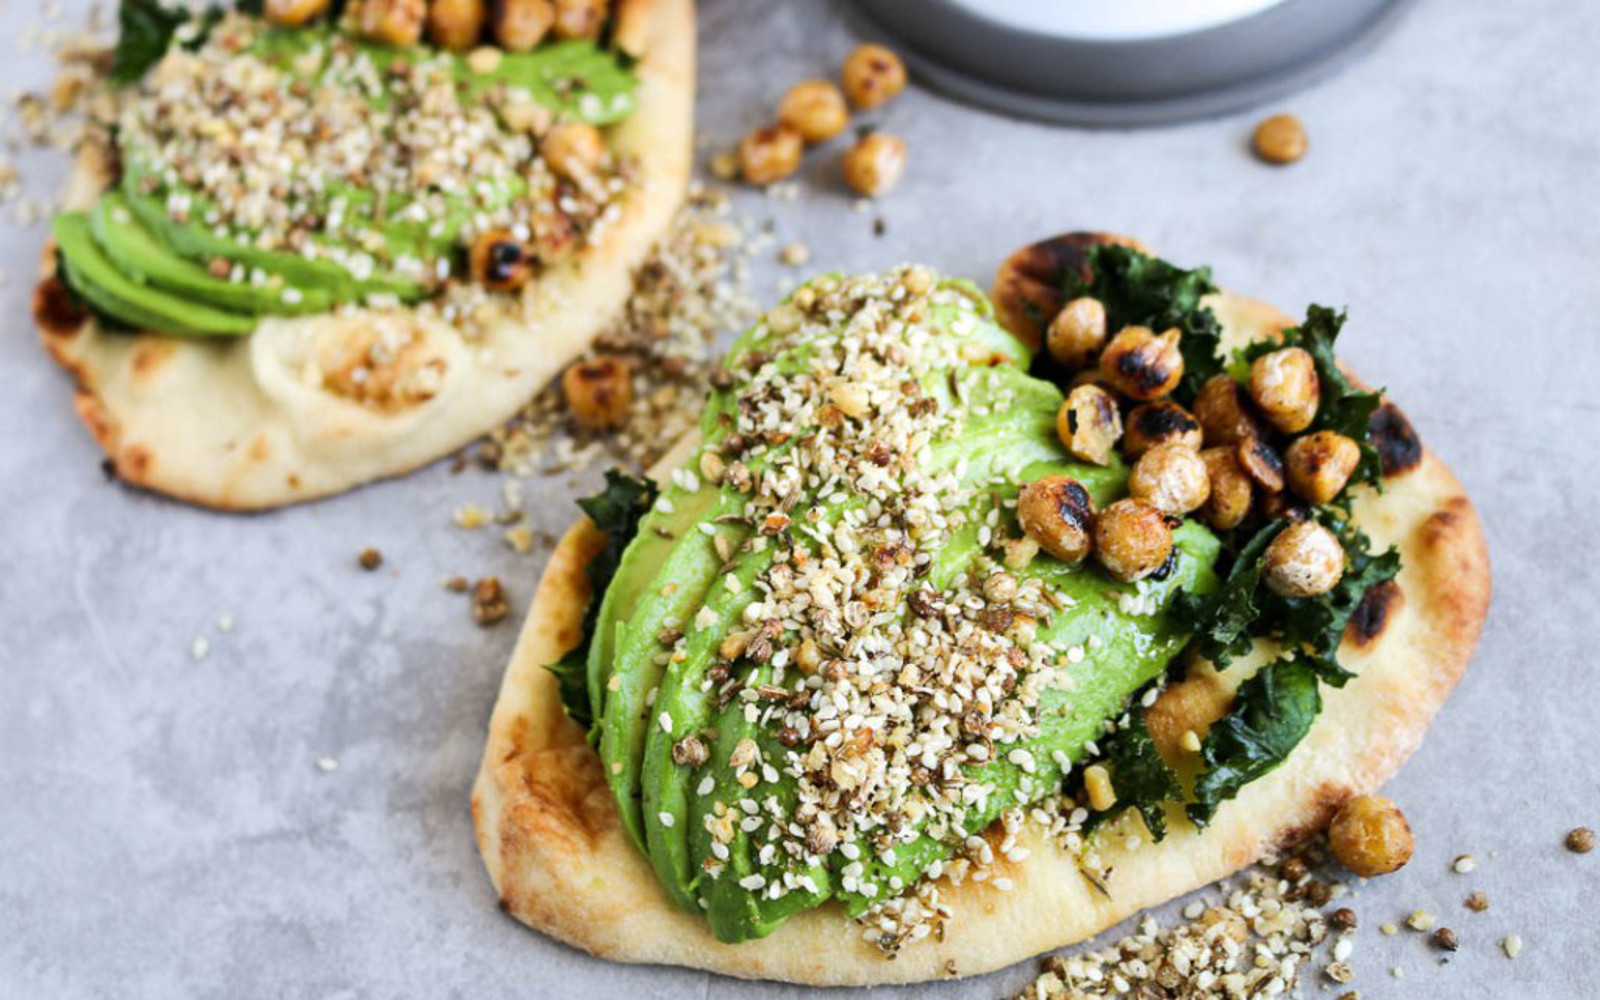 Naan Avocado Toast with Dukkah & Pan-Fried Chickpeas